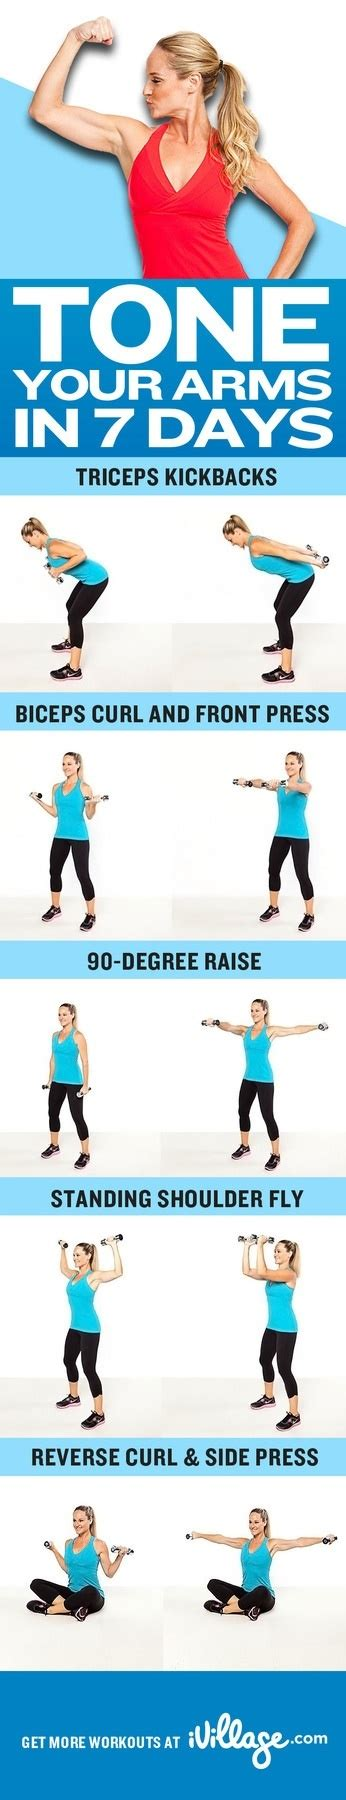 toned arms workout time